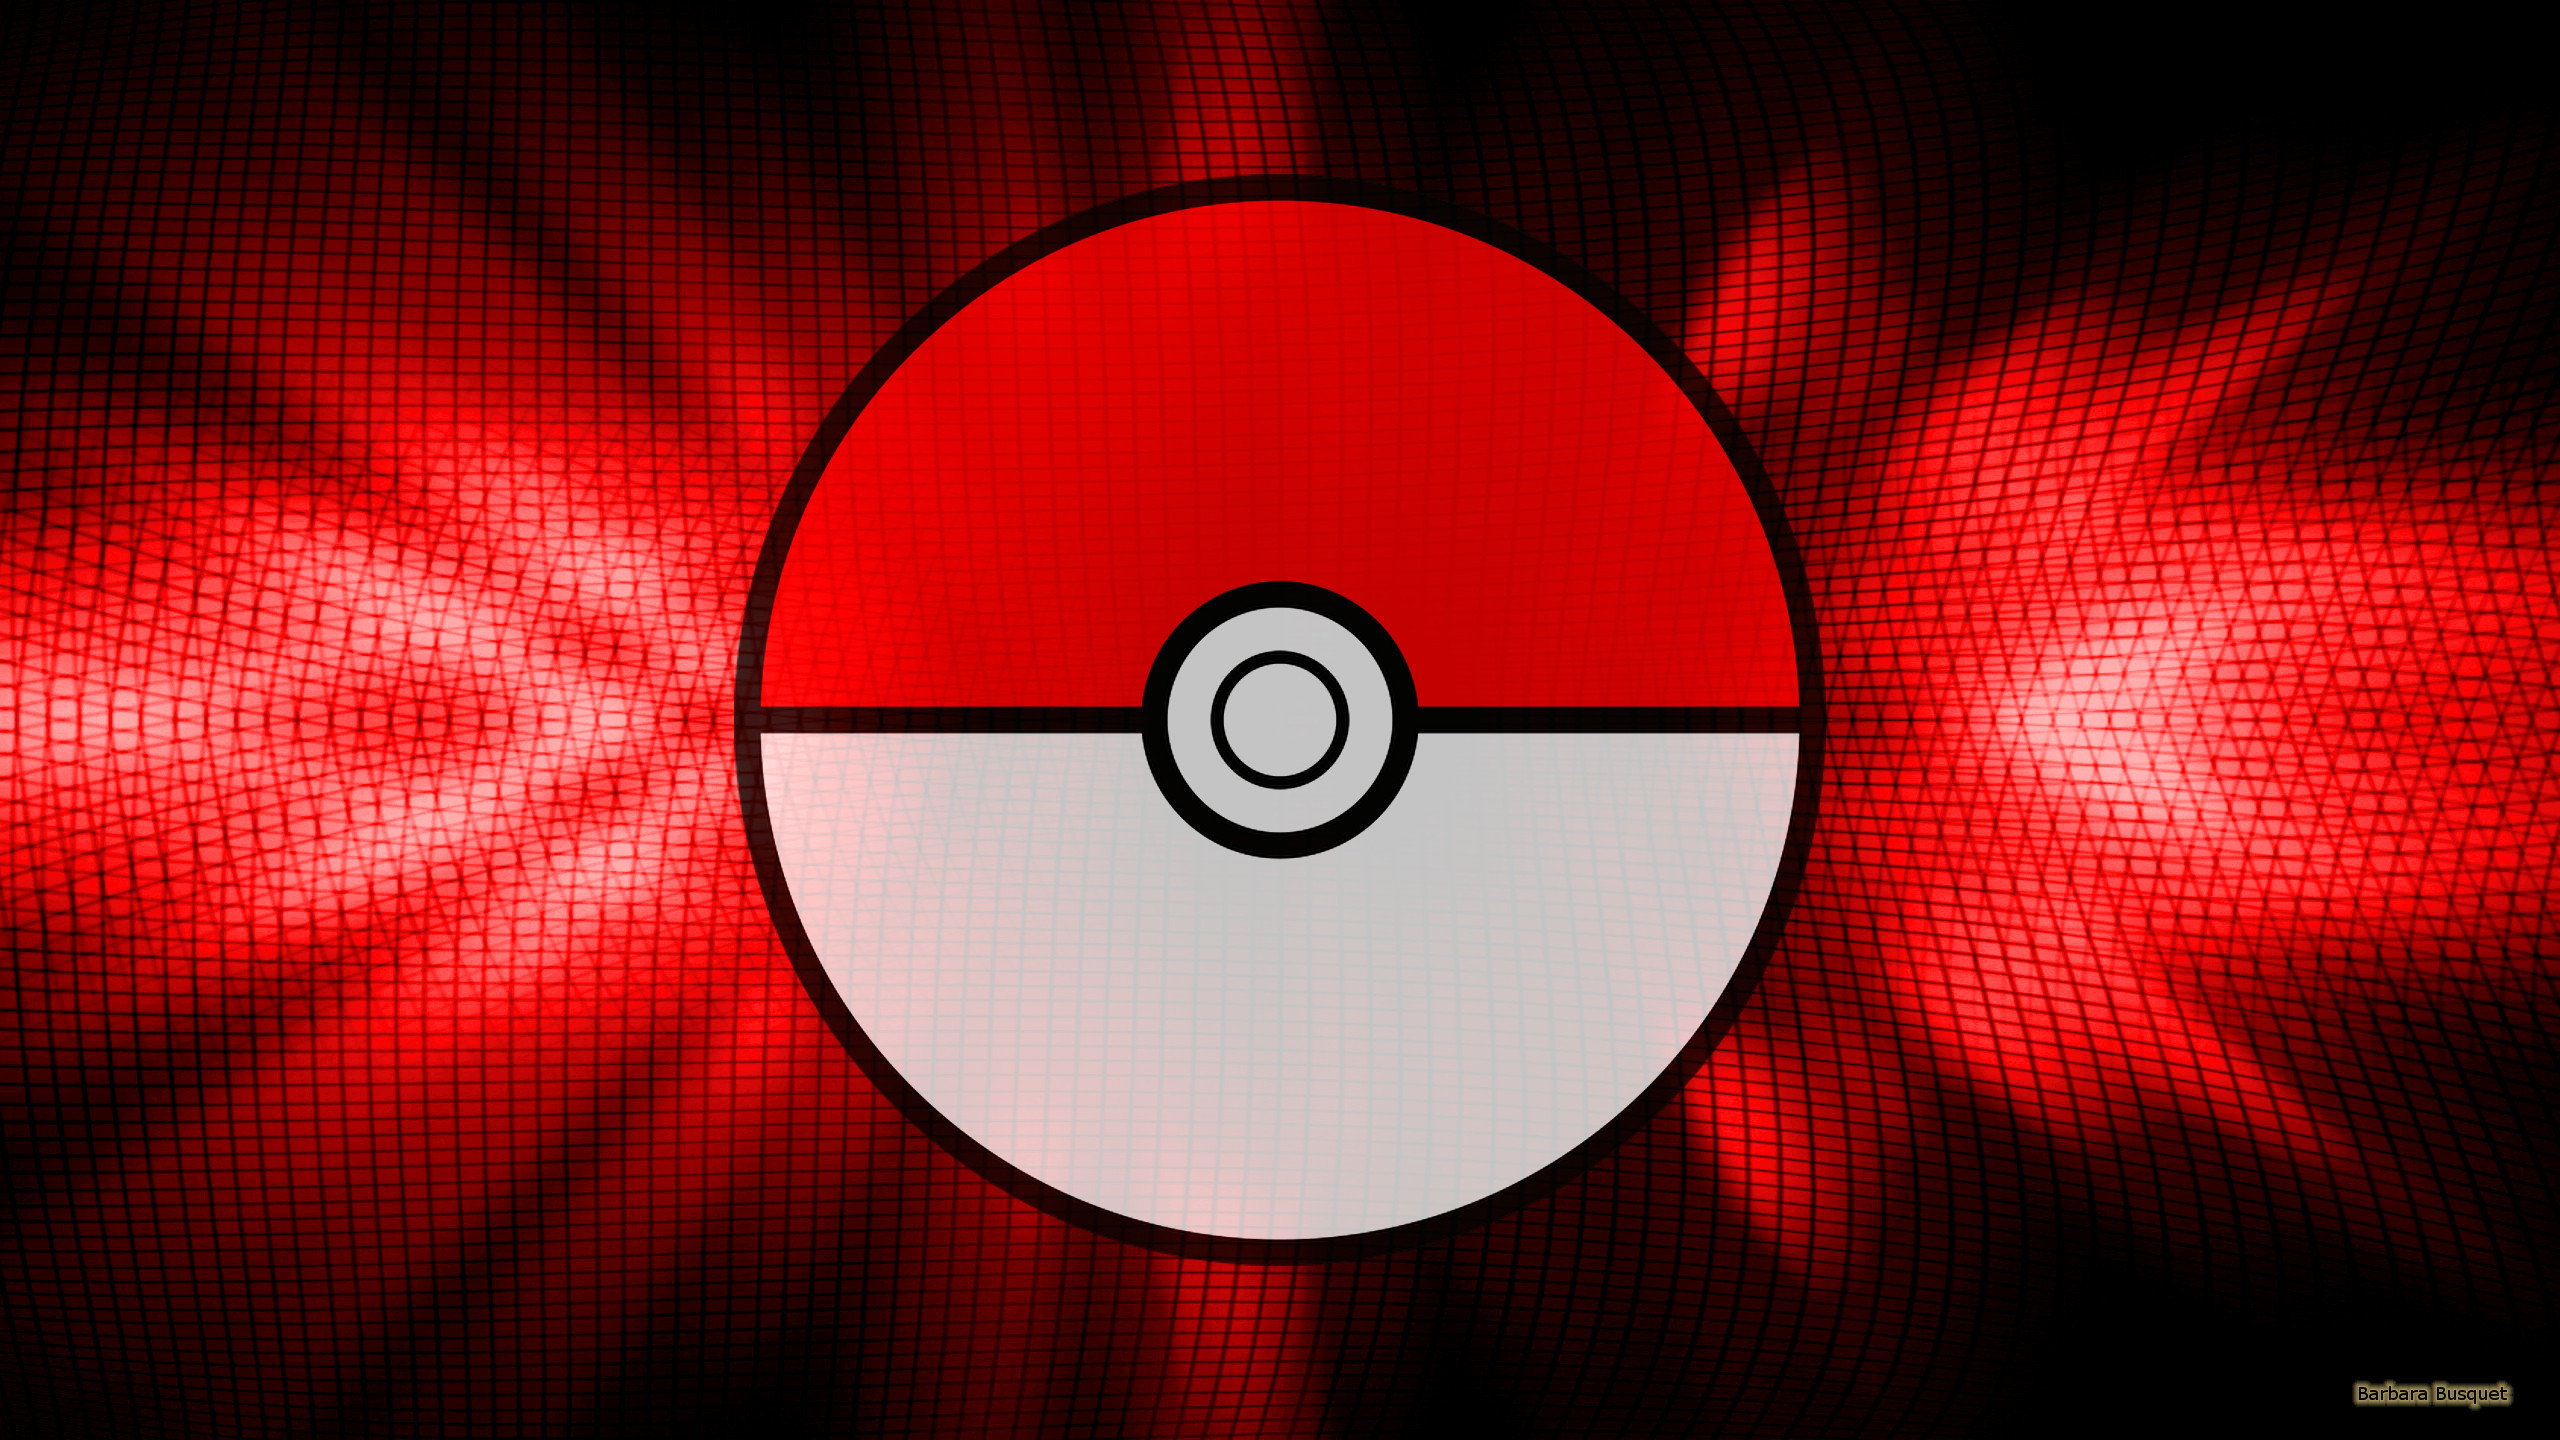 Res: 2560x1440, Black red Pokemon GO wallpaper with a pokeball.